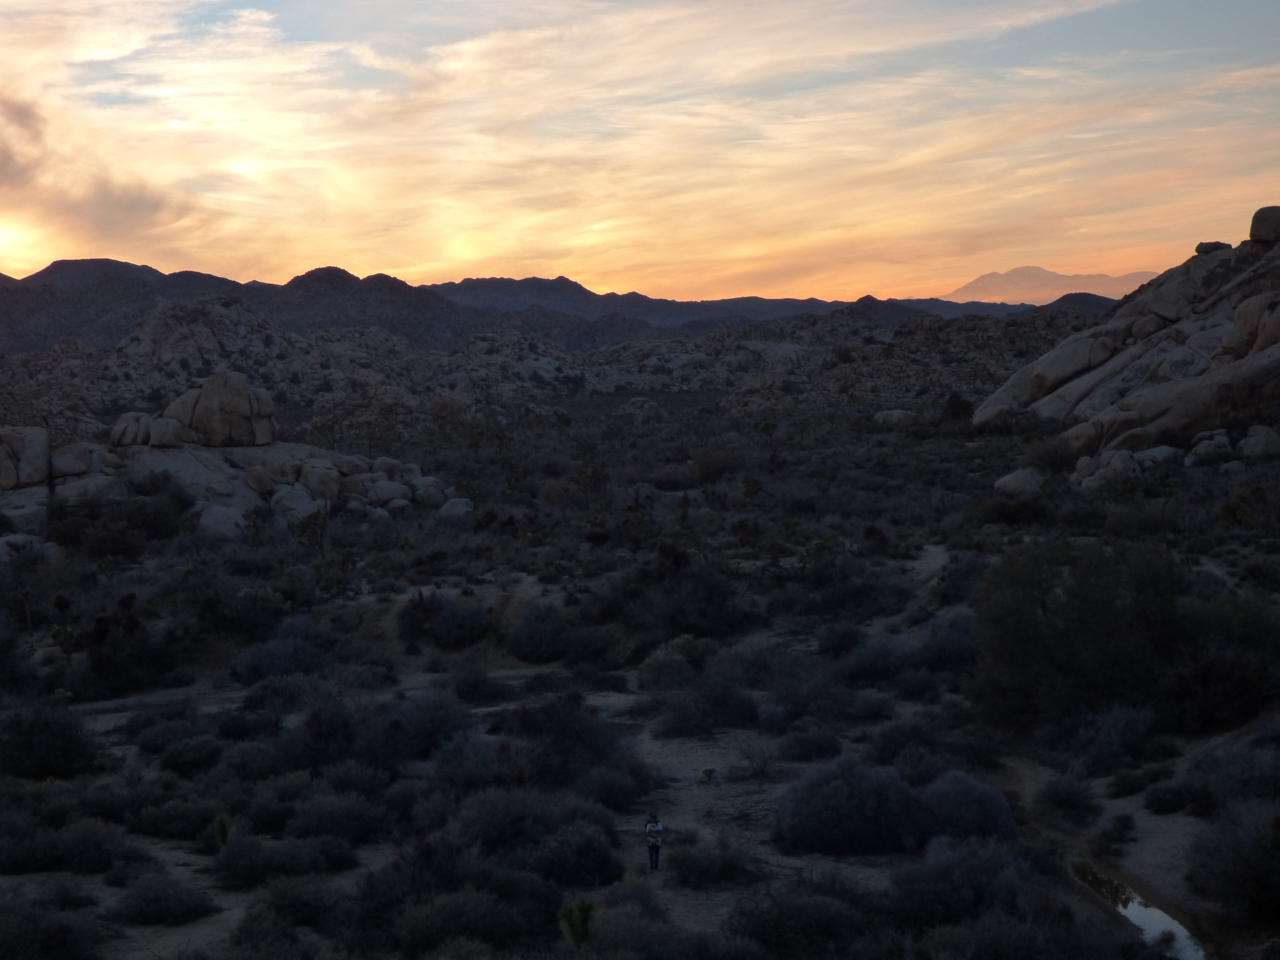 Barker Dam Sunset Joshua Tree National Park